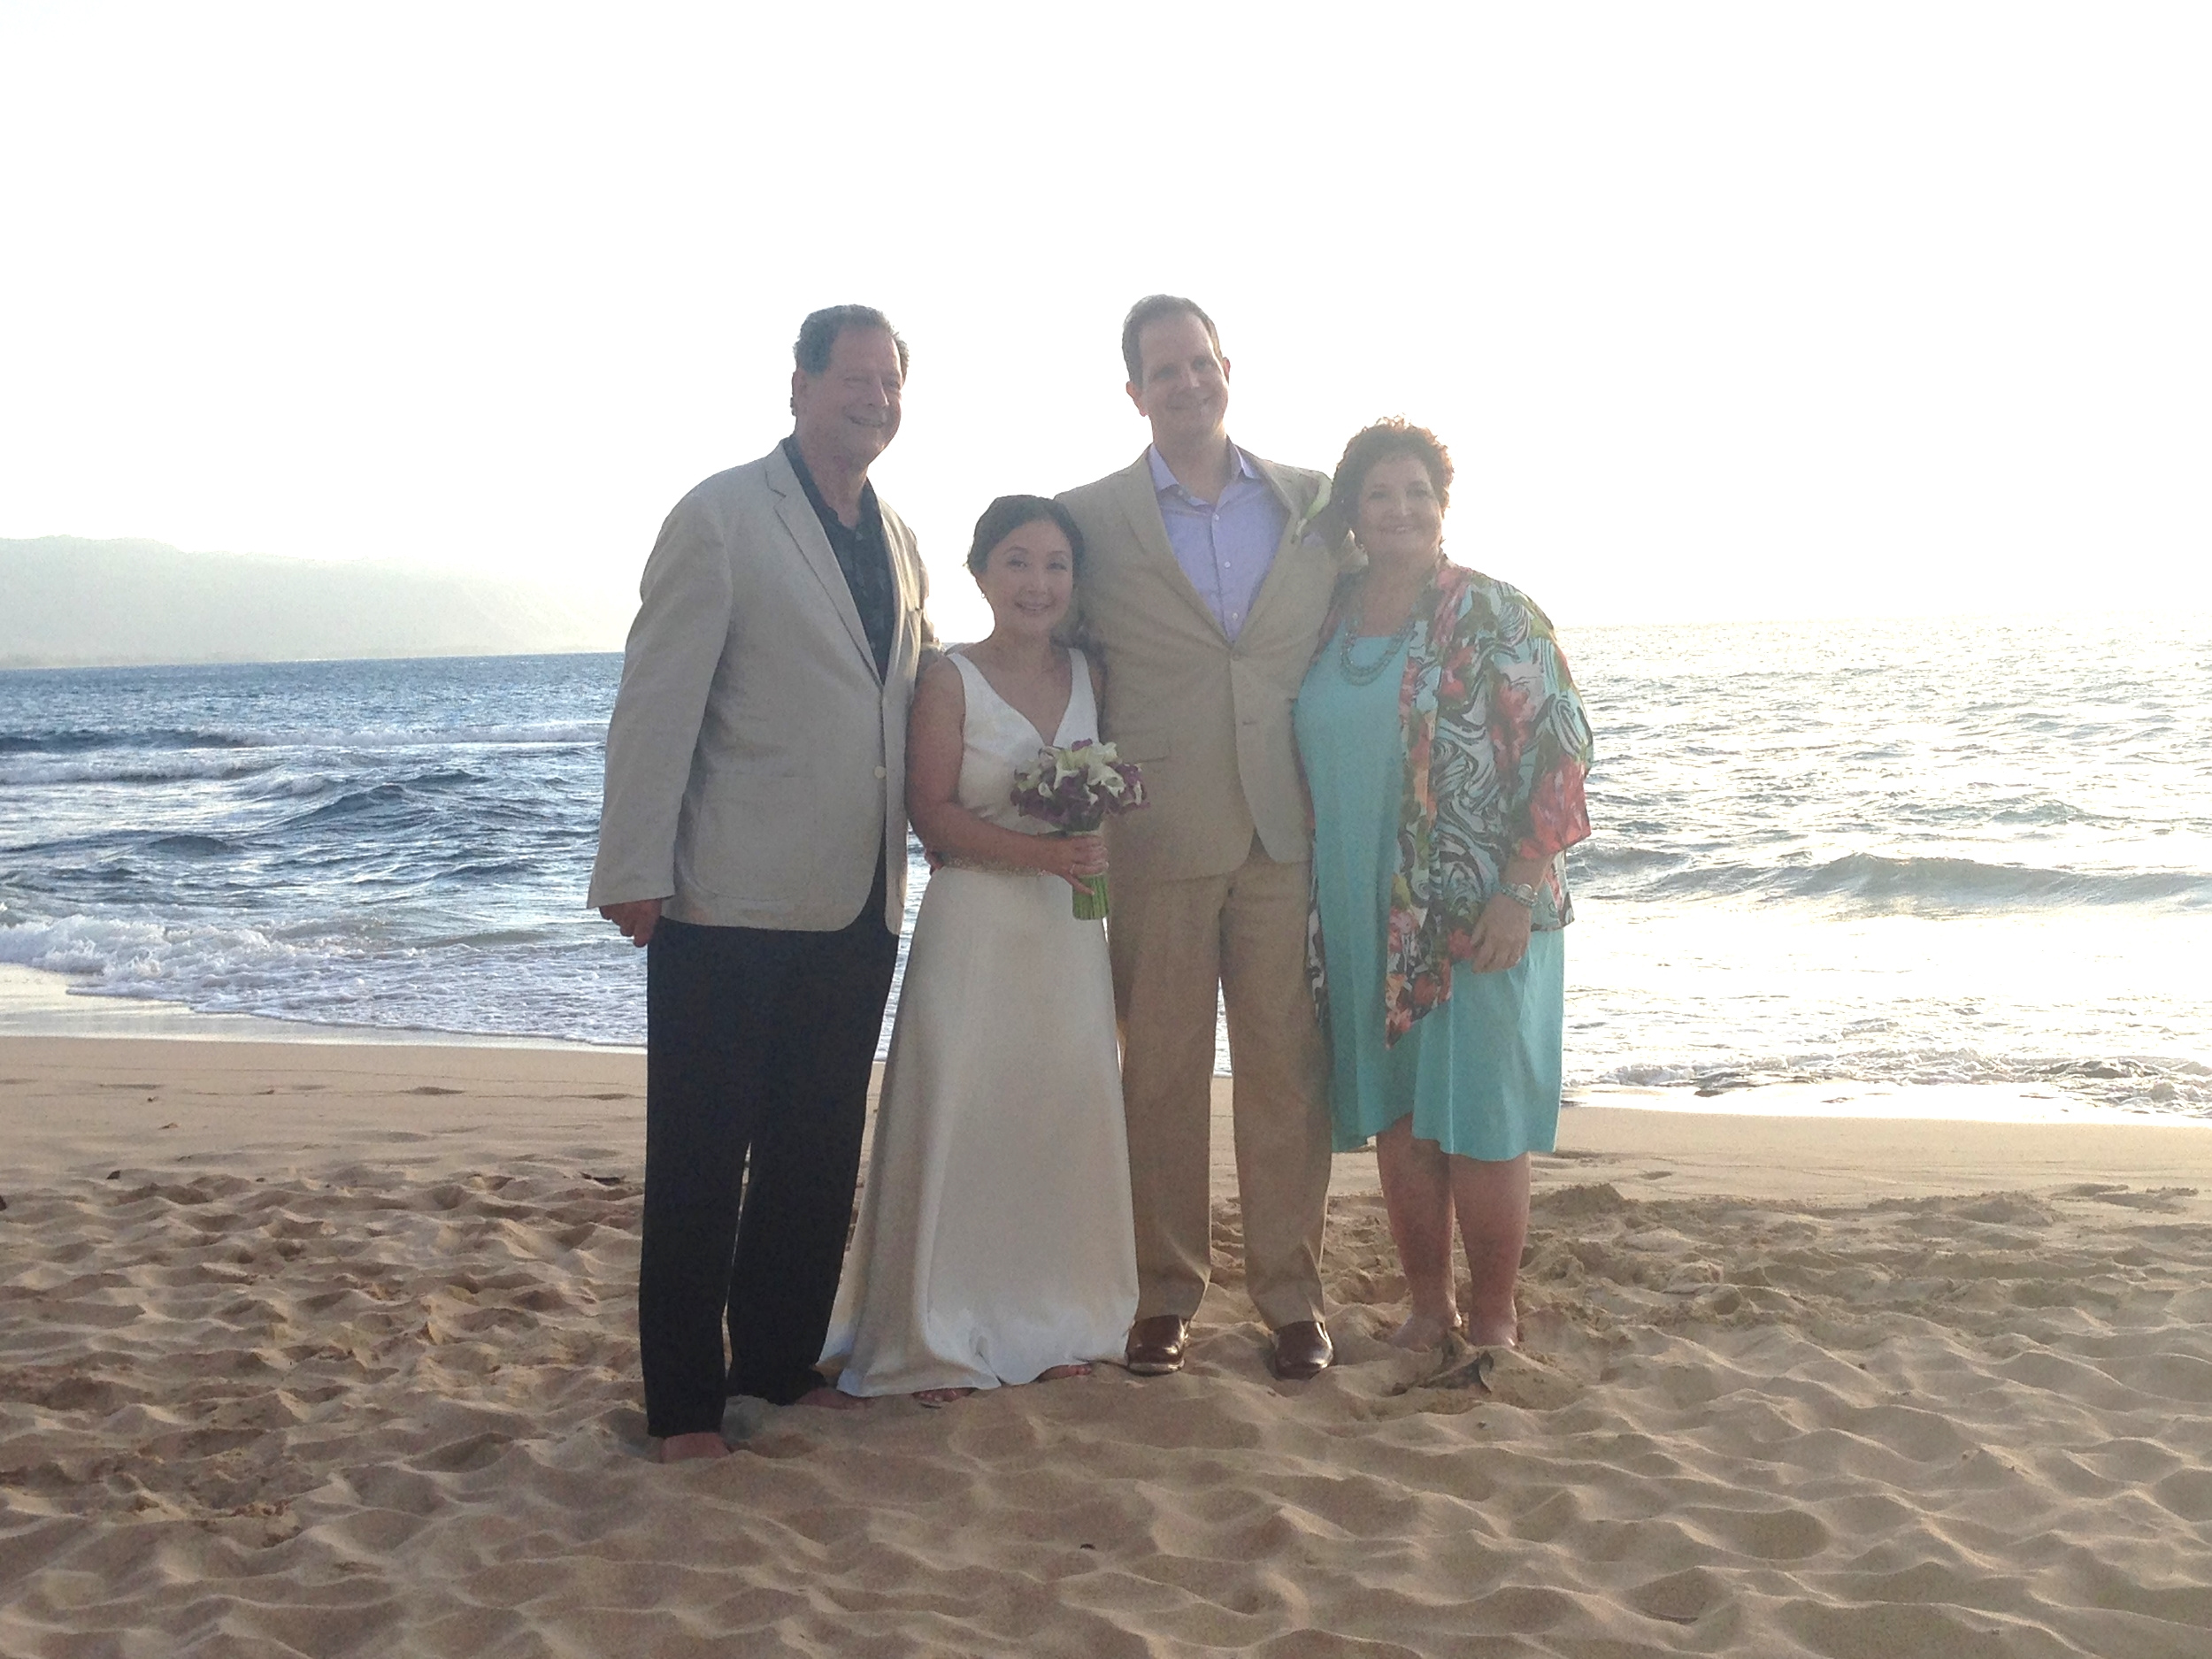 north-shore-beach-wedding-2.JPG